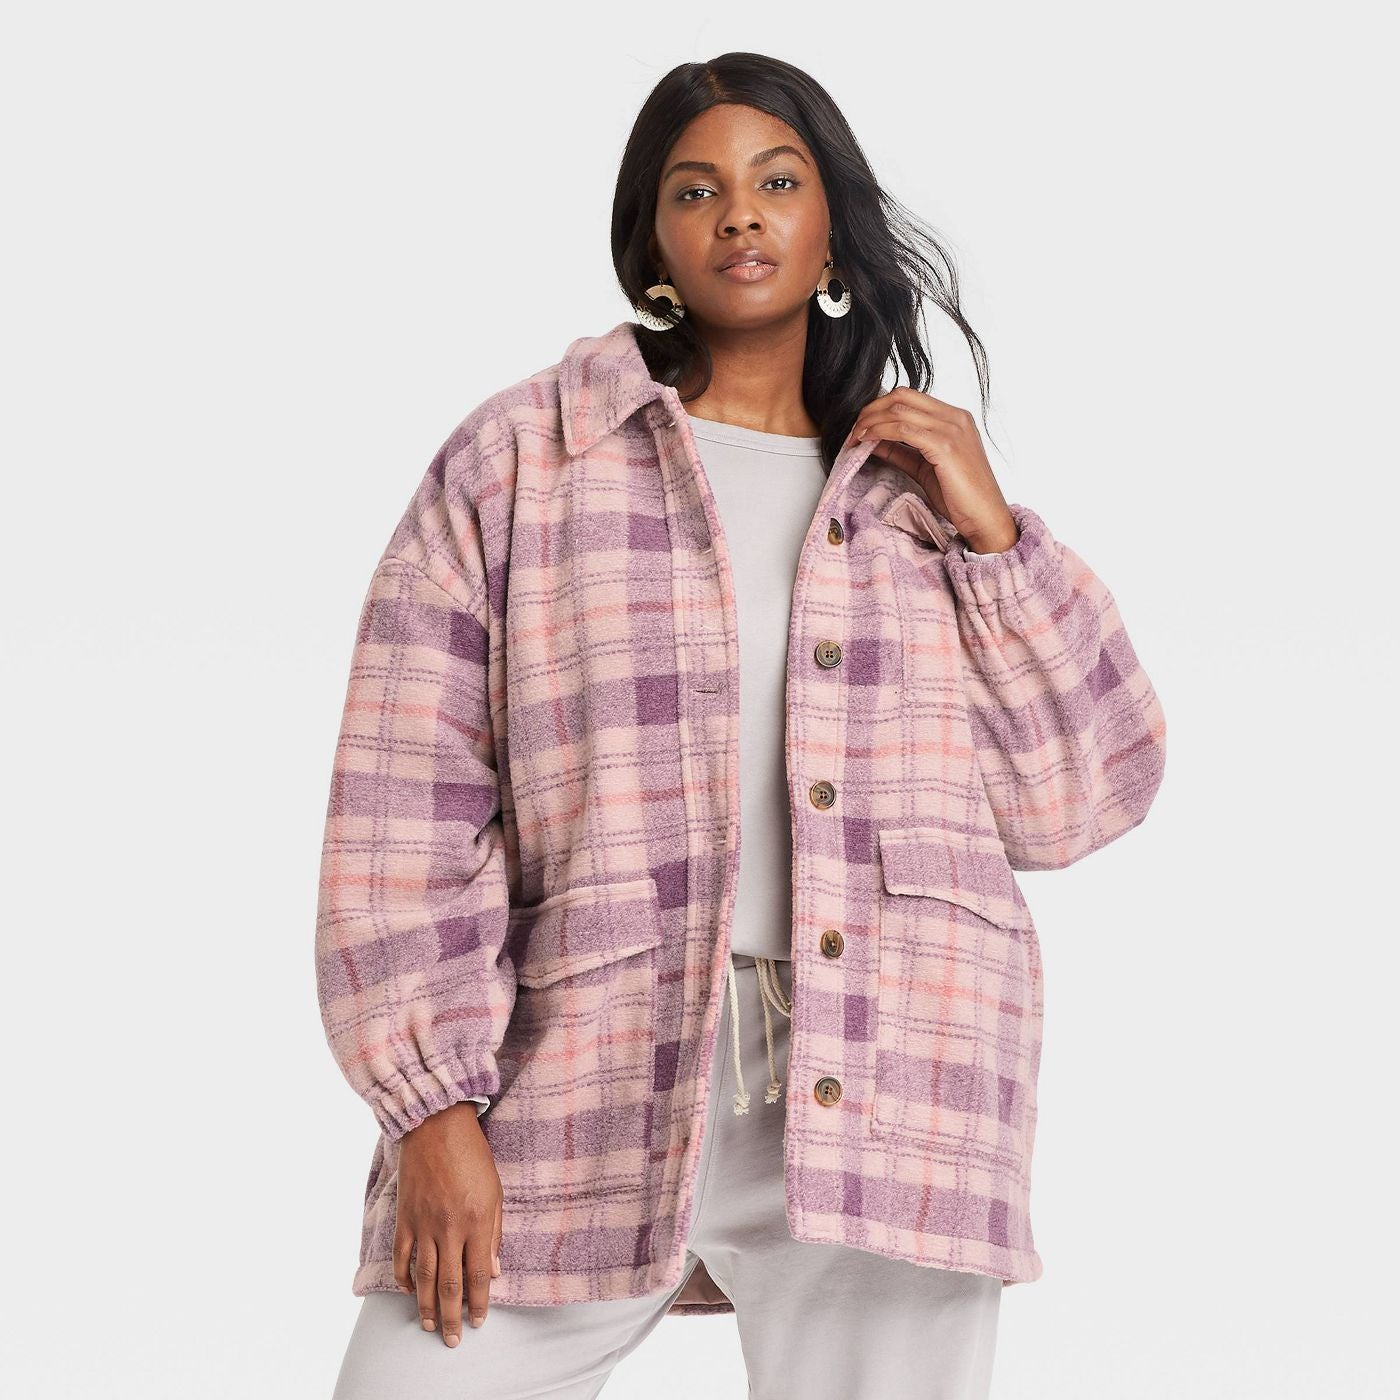 model wearing the pink plaid shacket